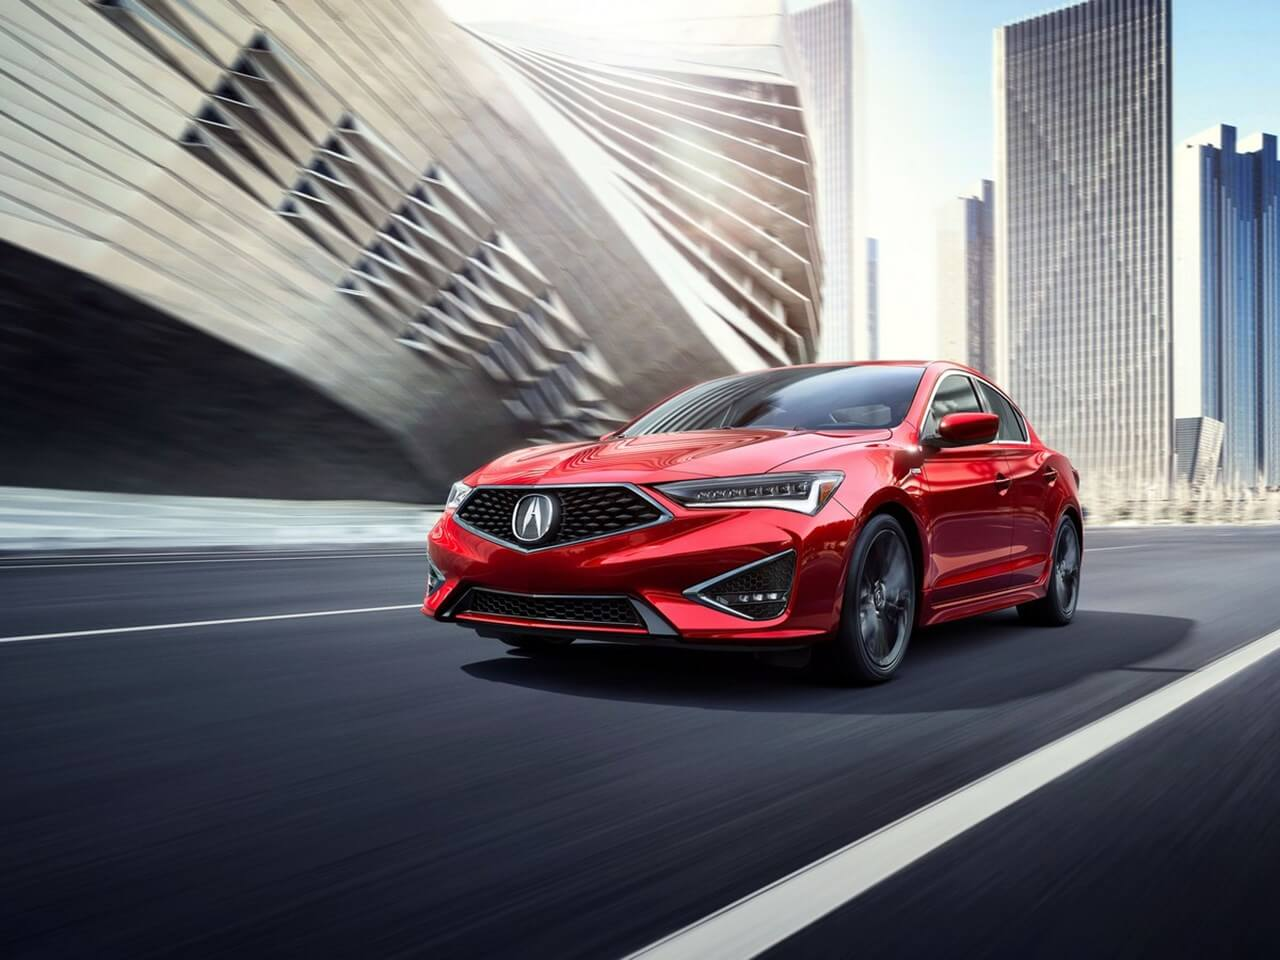 2020 Acura ILX Type S Model Preview